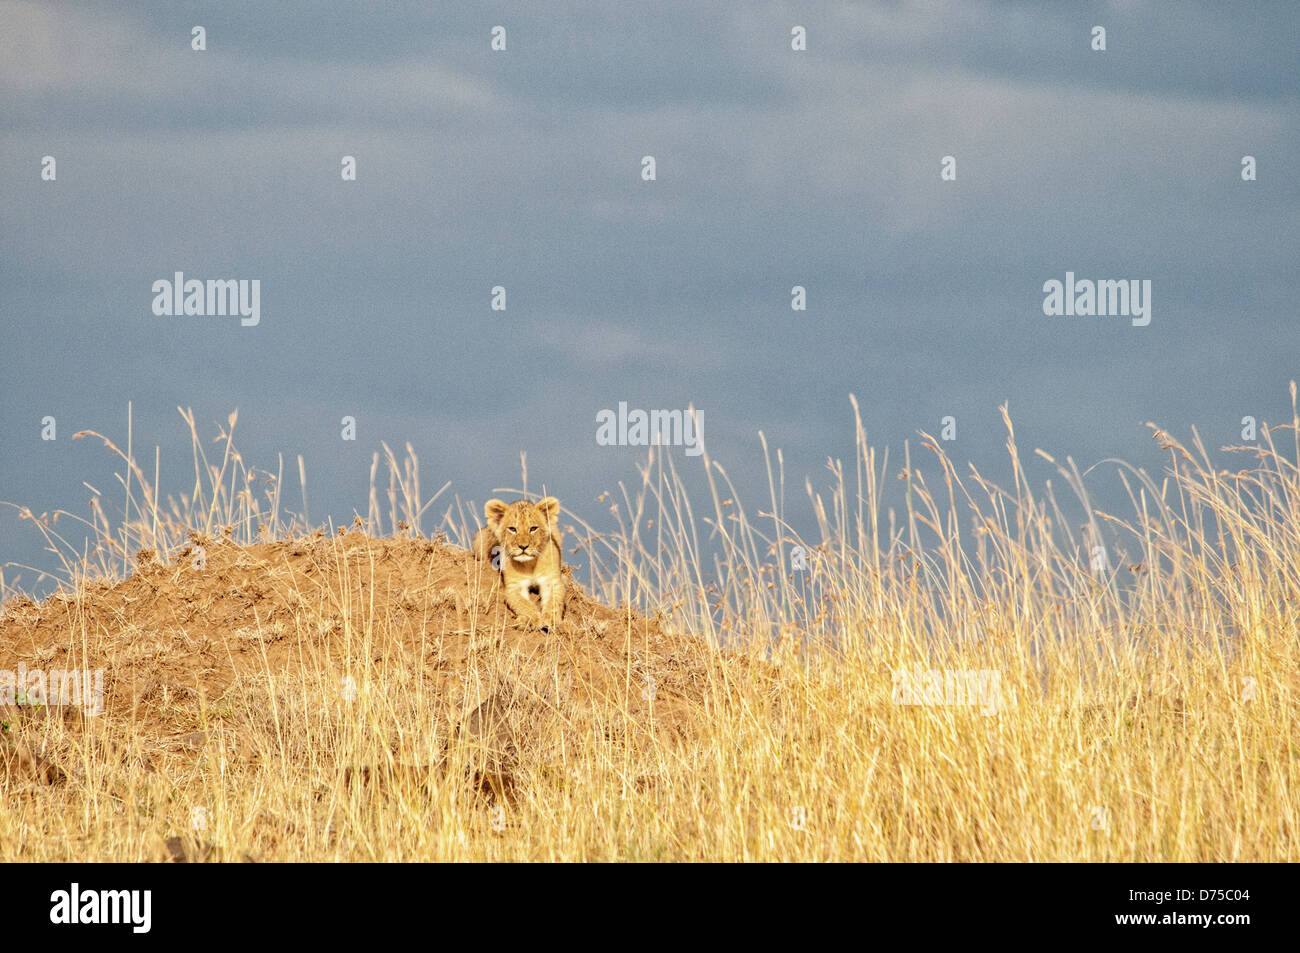 small-lion-cub-panthera-leo-in-tall-gras